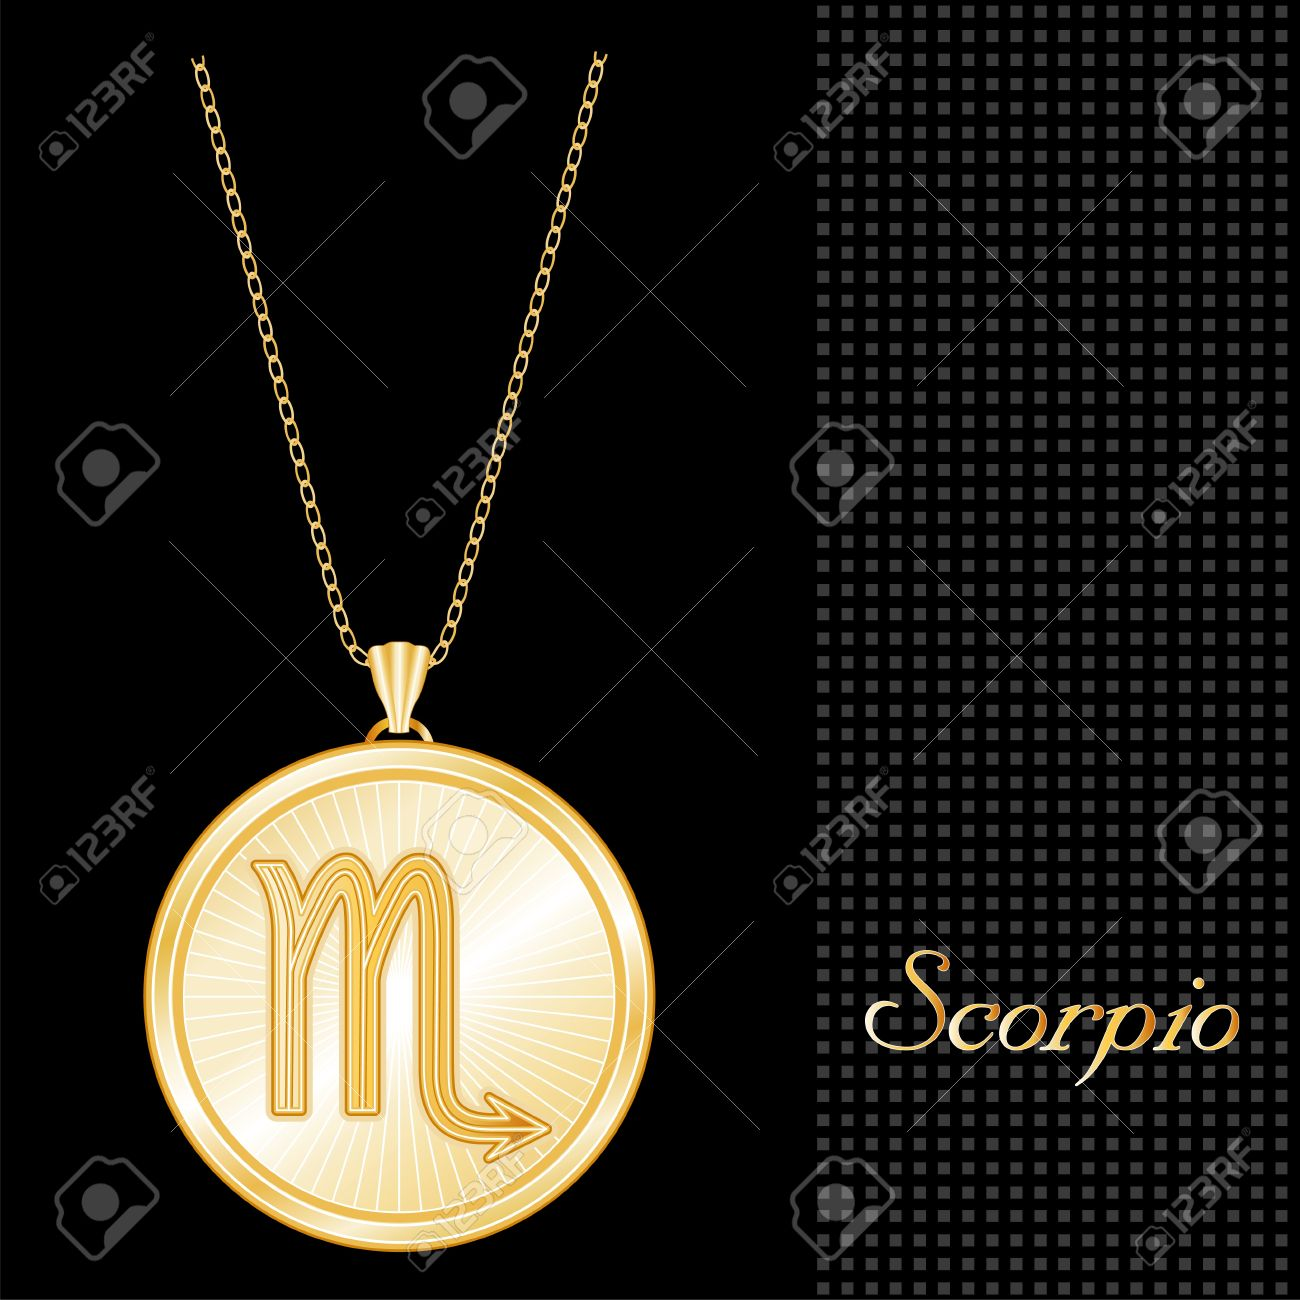 Scorpio pendant gold necklace and chain engraved astrology water scorpio pendant gold necklace and chain engraved astrology water sign symbol star burst design mozeypictures Gallery